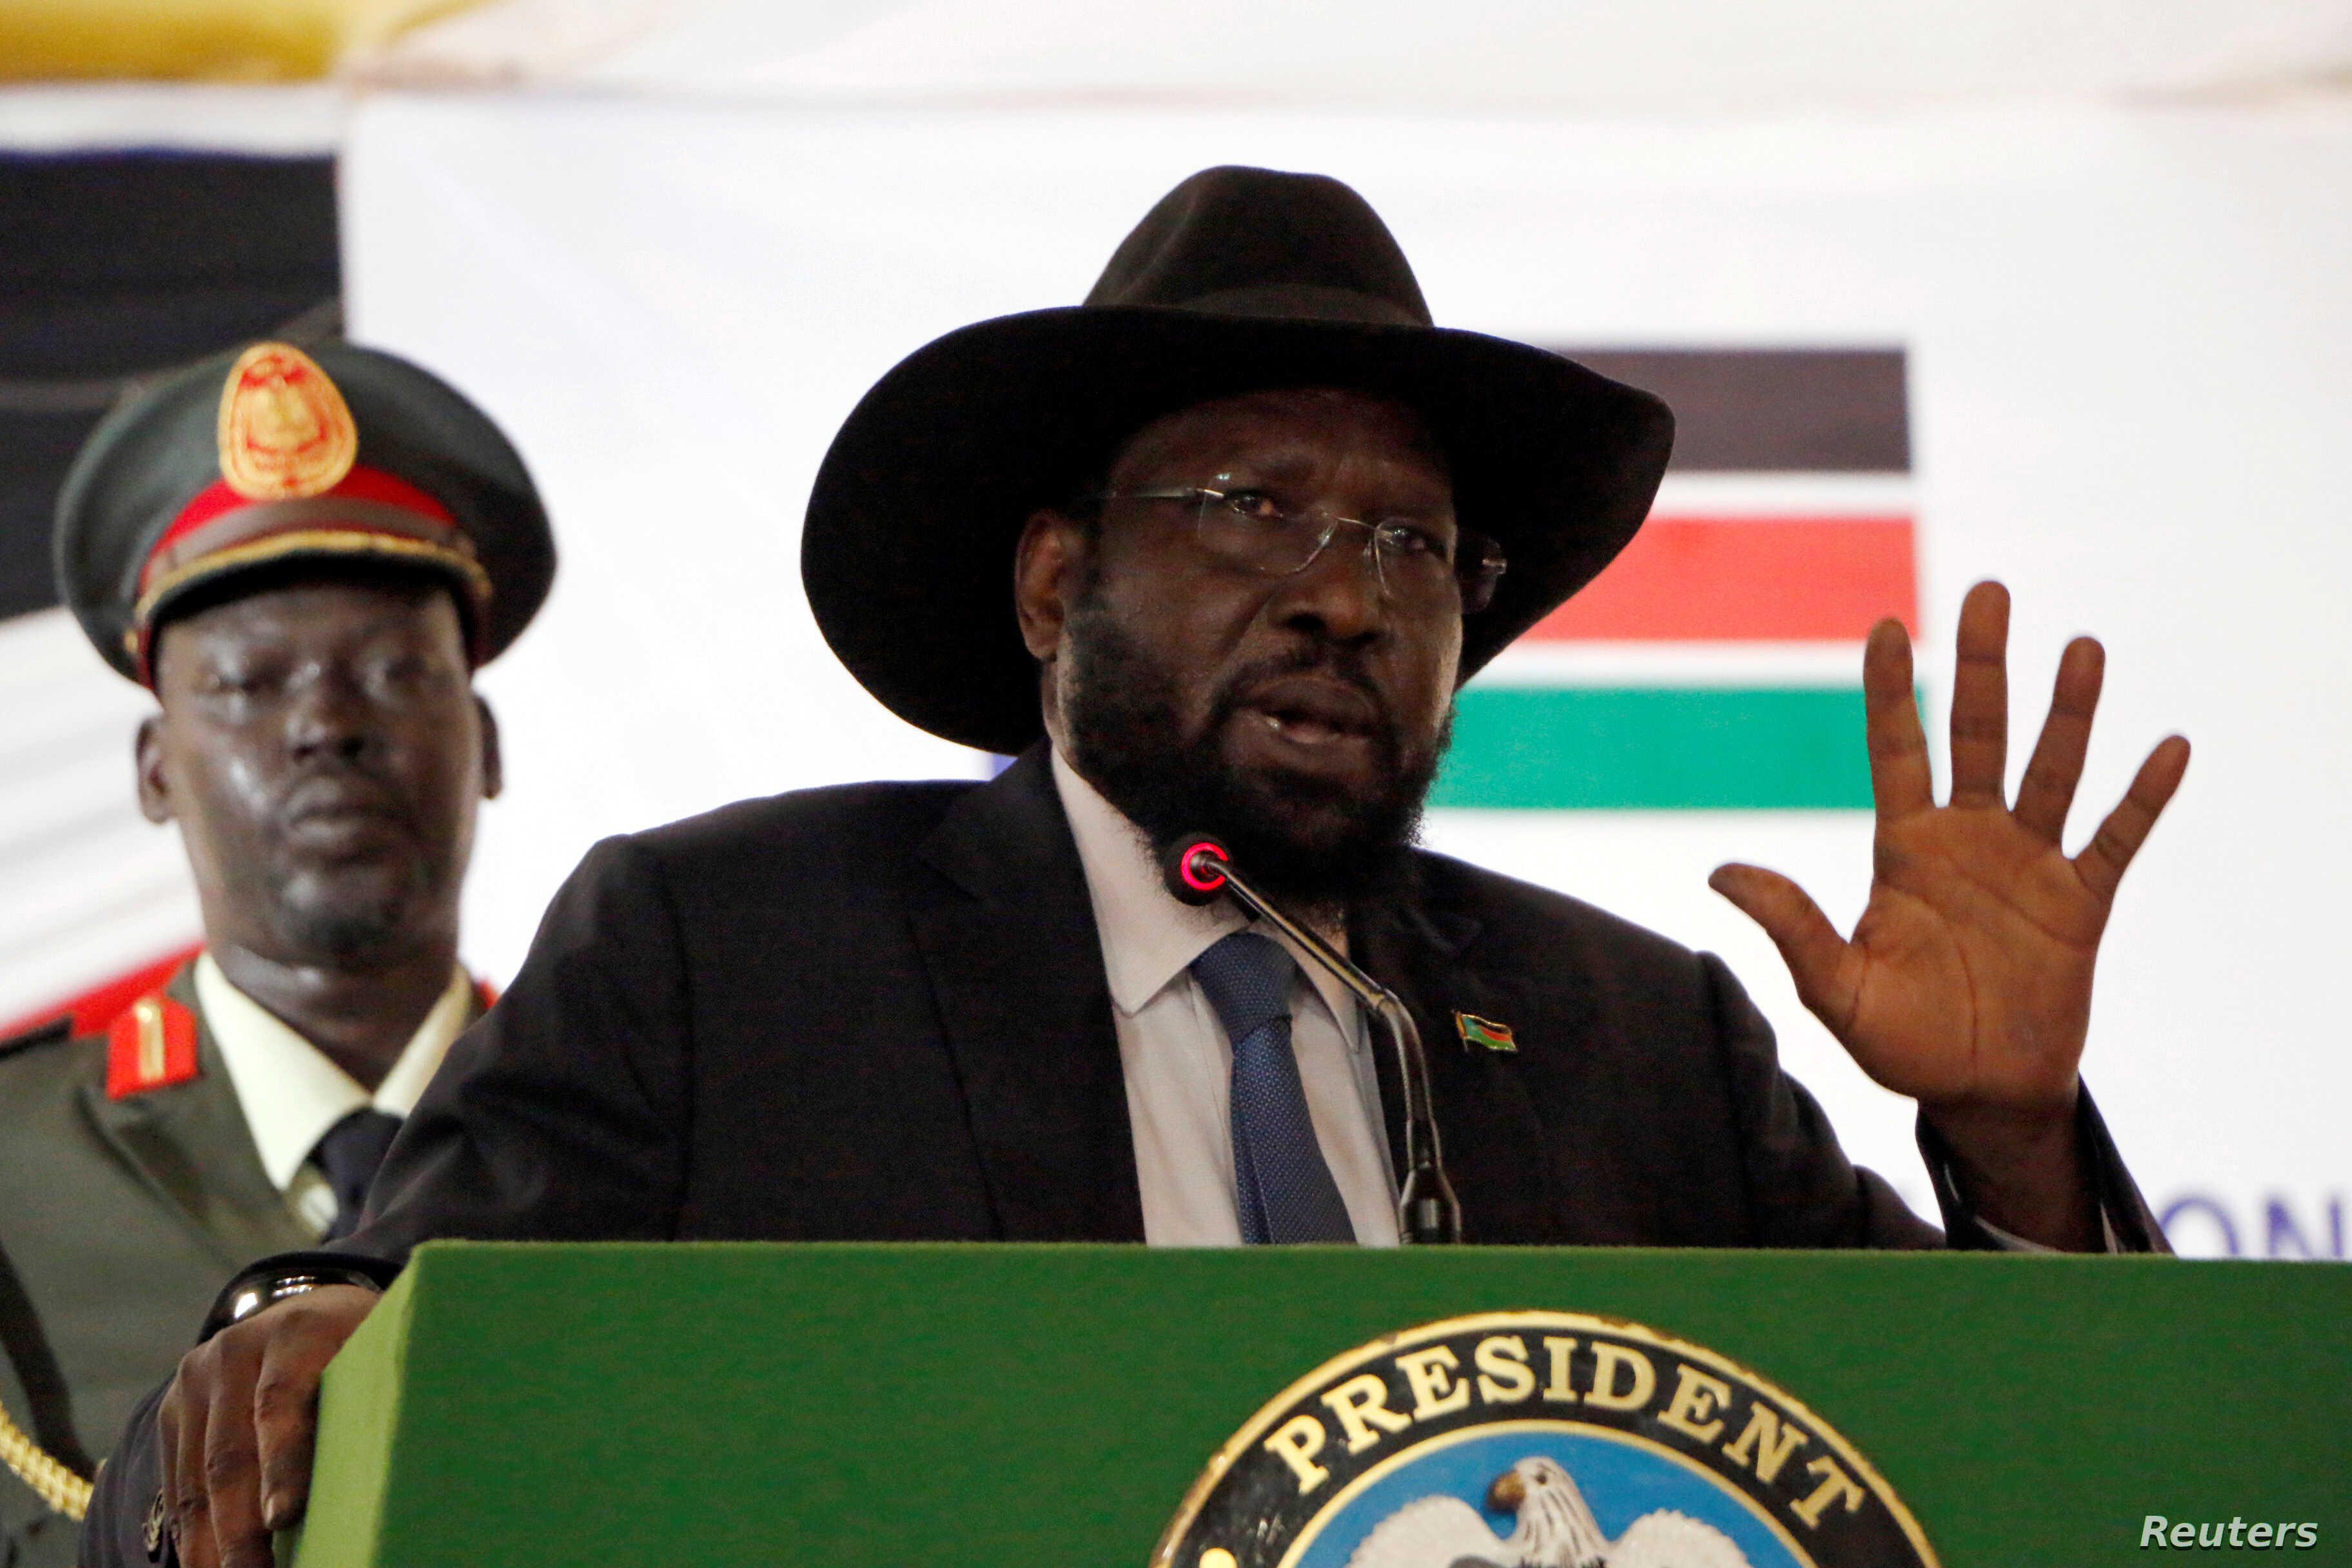 South Sudan's President Salva Kiir, who launched the National Dialogue committee in Juba, May 22, 2017, has announced he will not serve as 'patron' for the process.